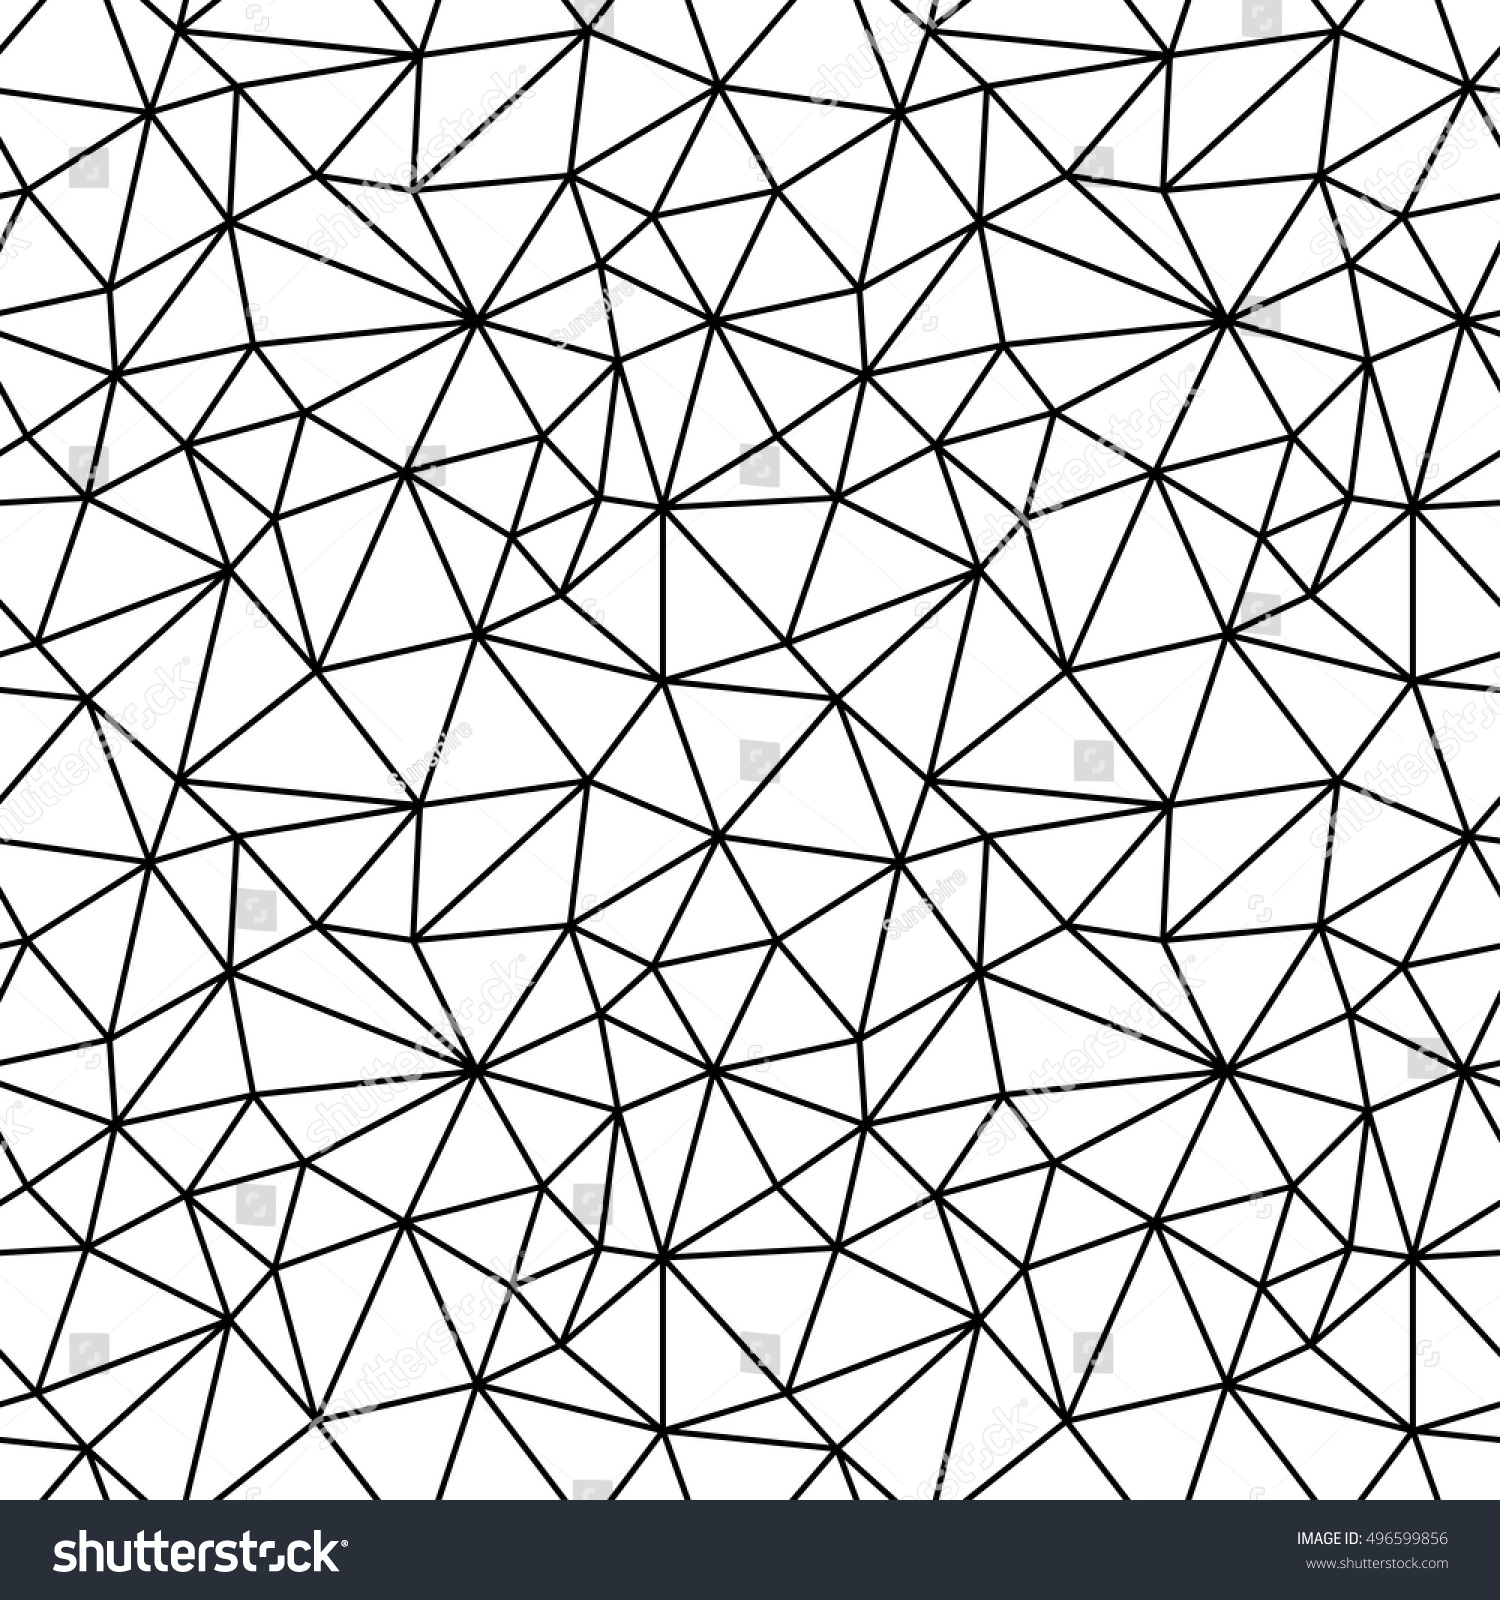 Abstract Geometric Black And White Hipster Fashion Polygon Background Pattern